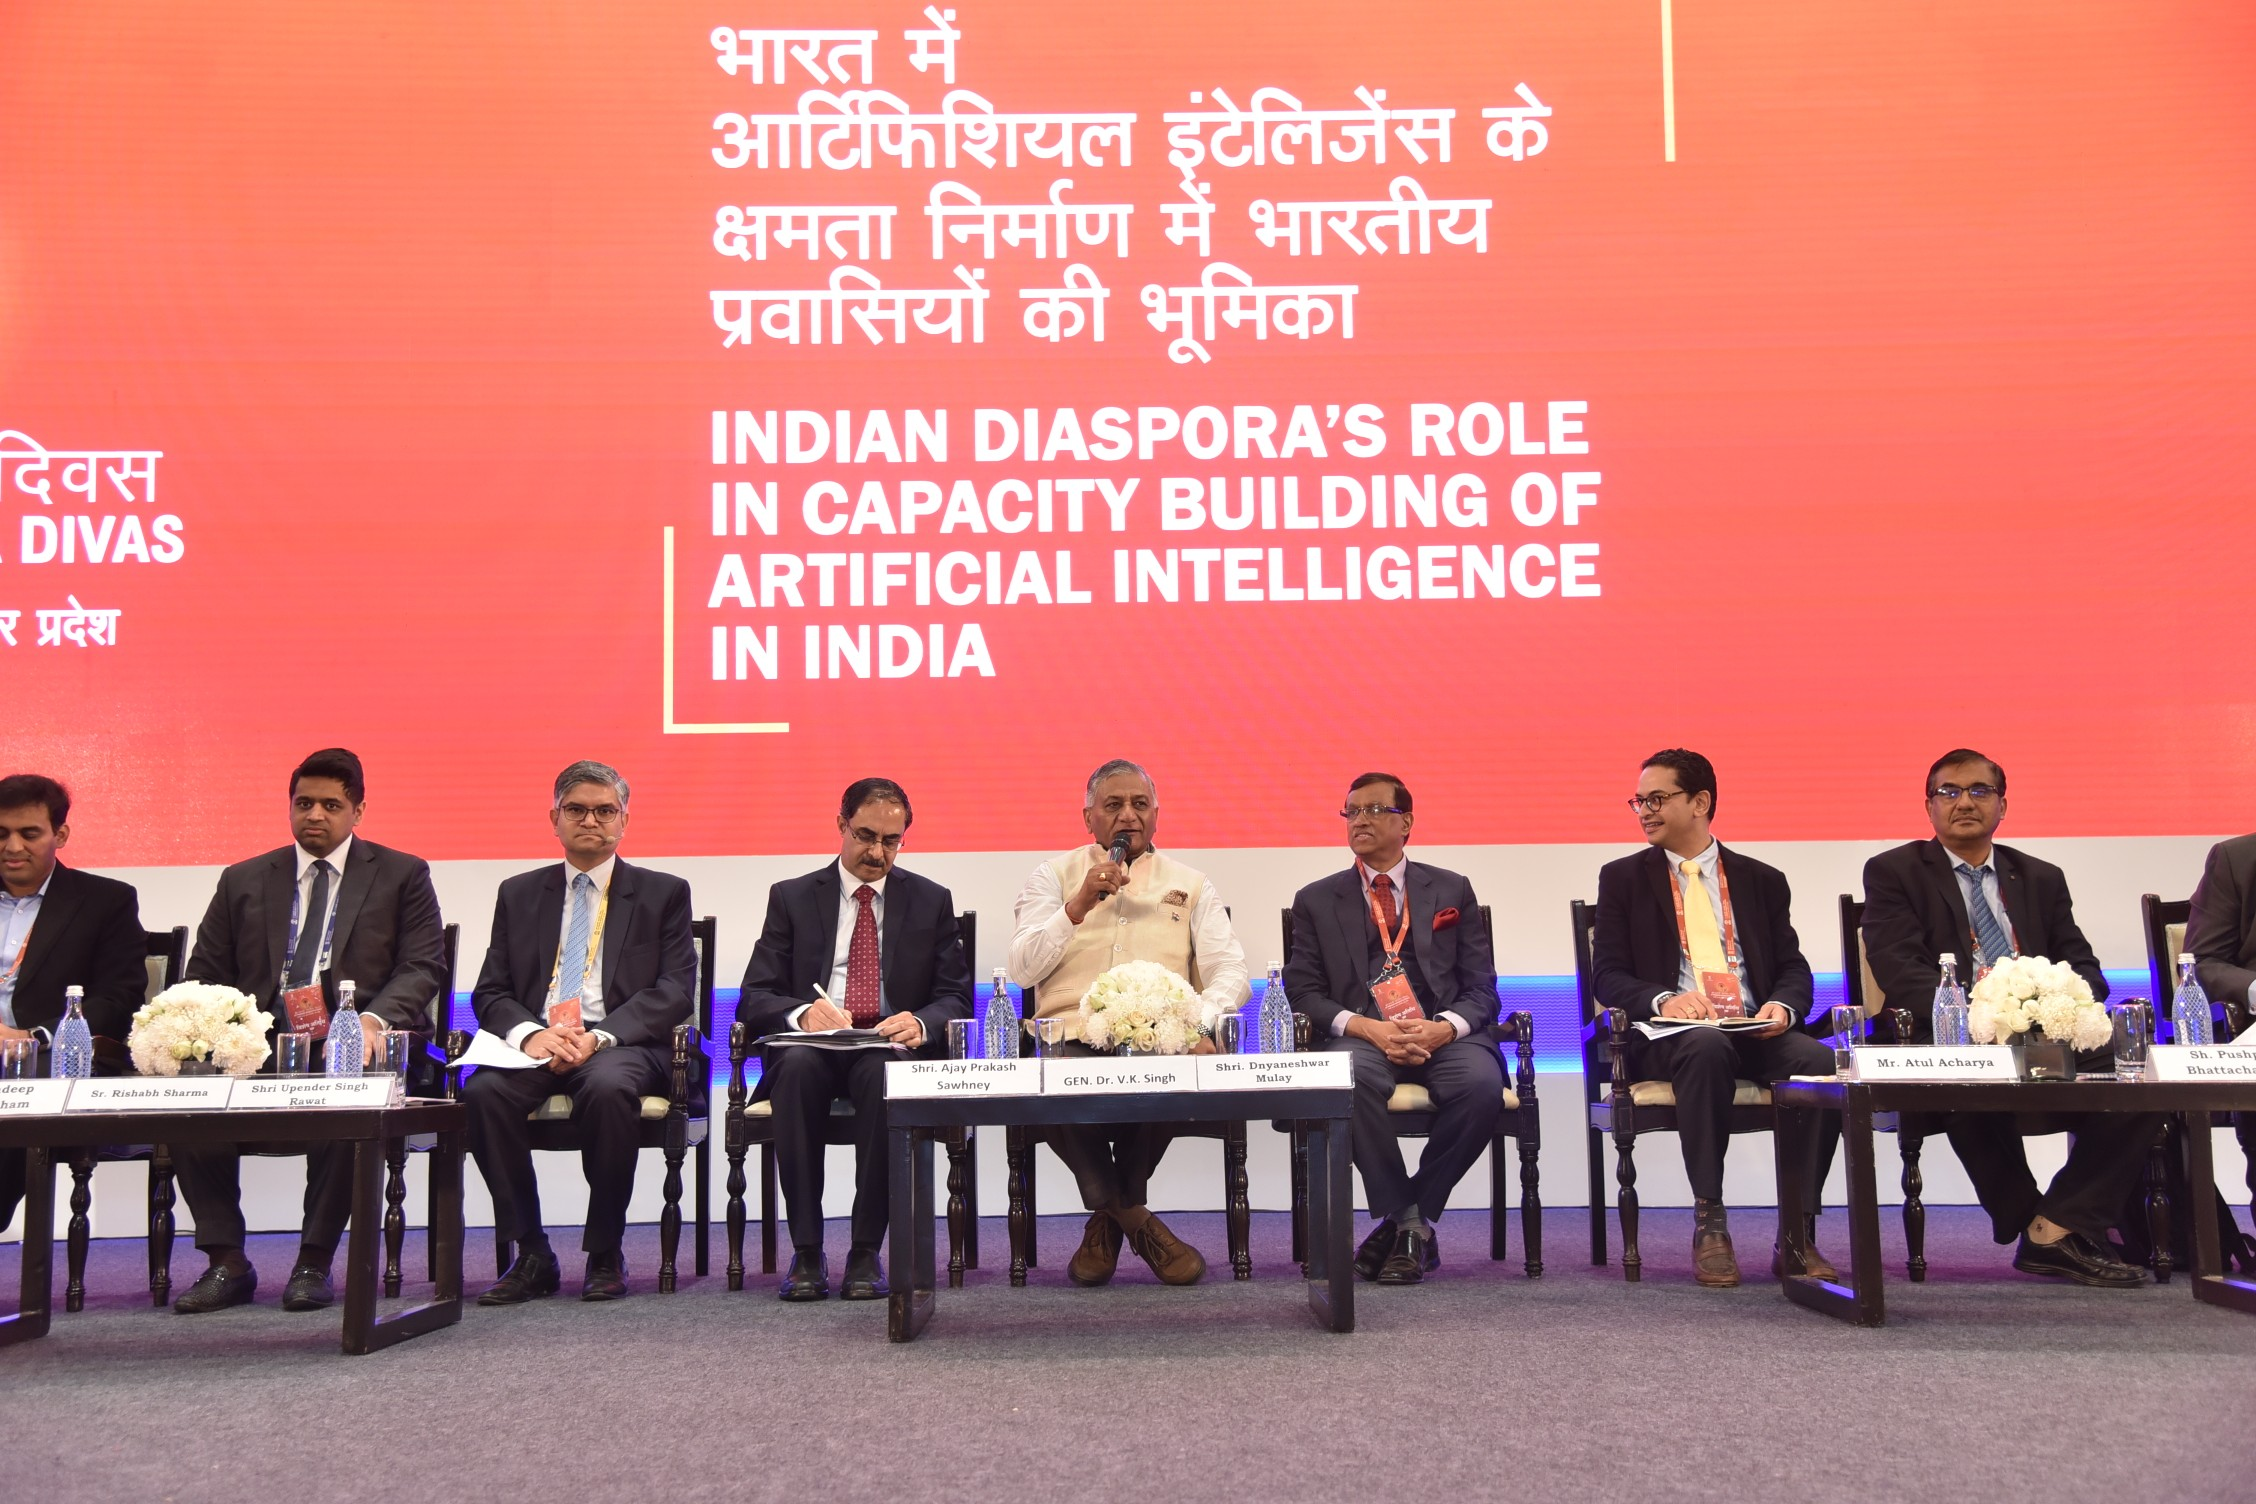 Plenary Session VI : Indian Diaspora's Role in Capacity Building of Artificial Intelligence in India